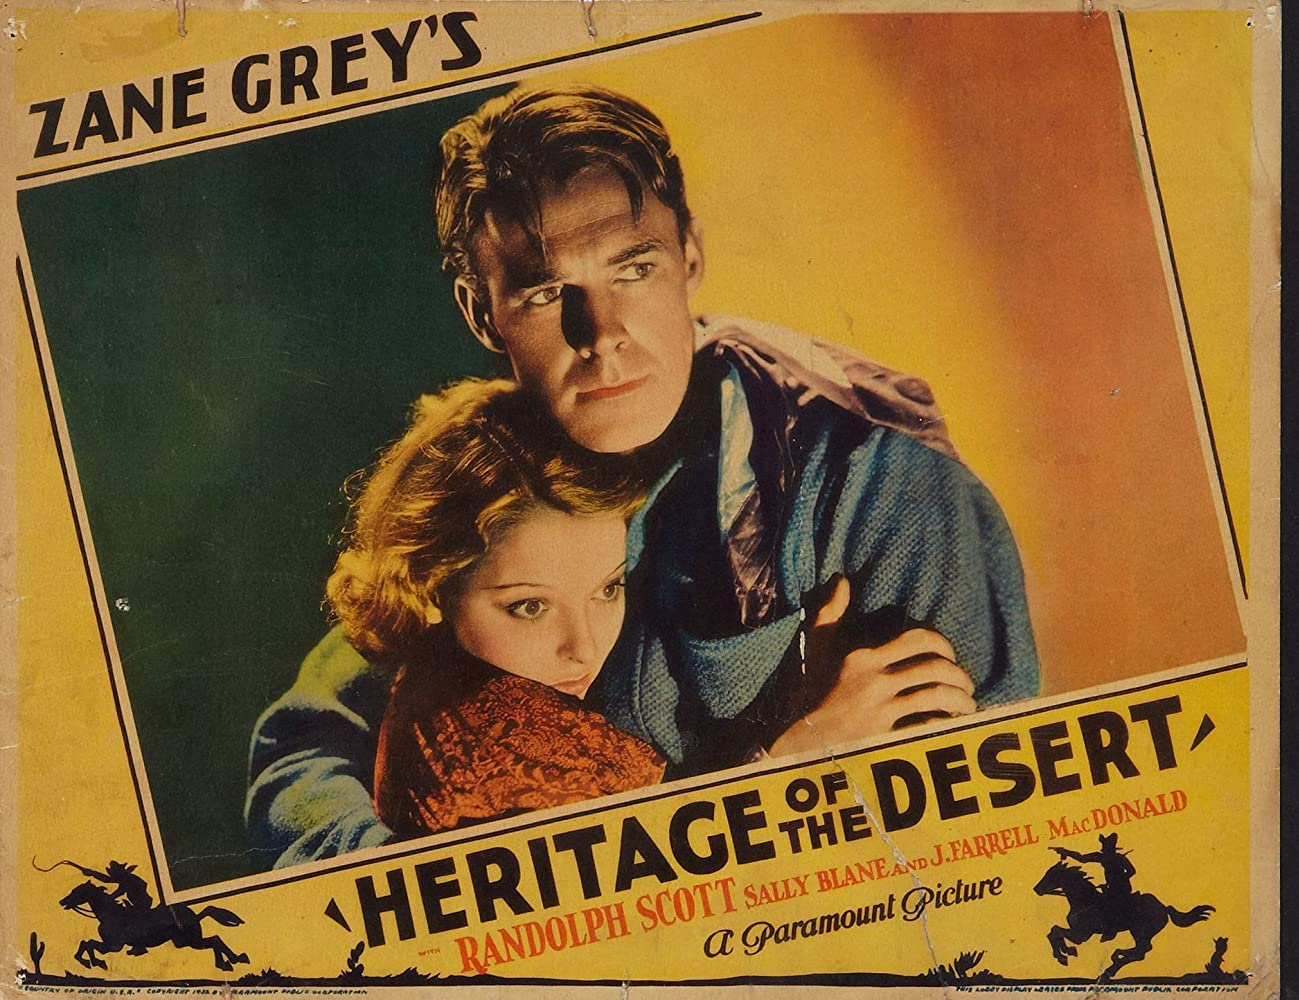 Randolph Scott and Sally Blane in Heritage of the Desert (1932)